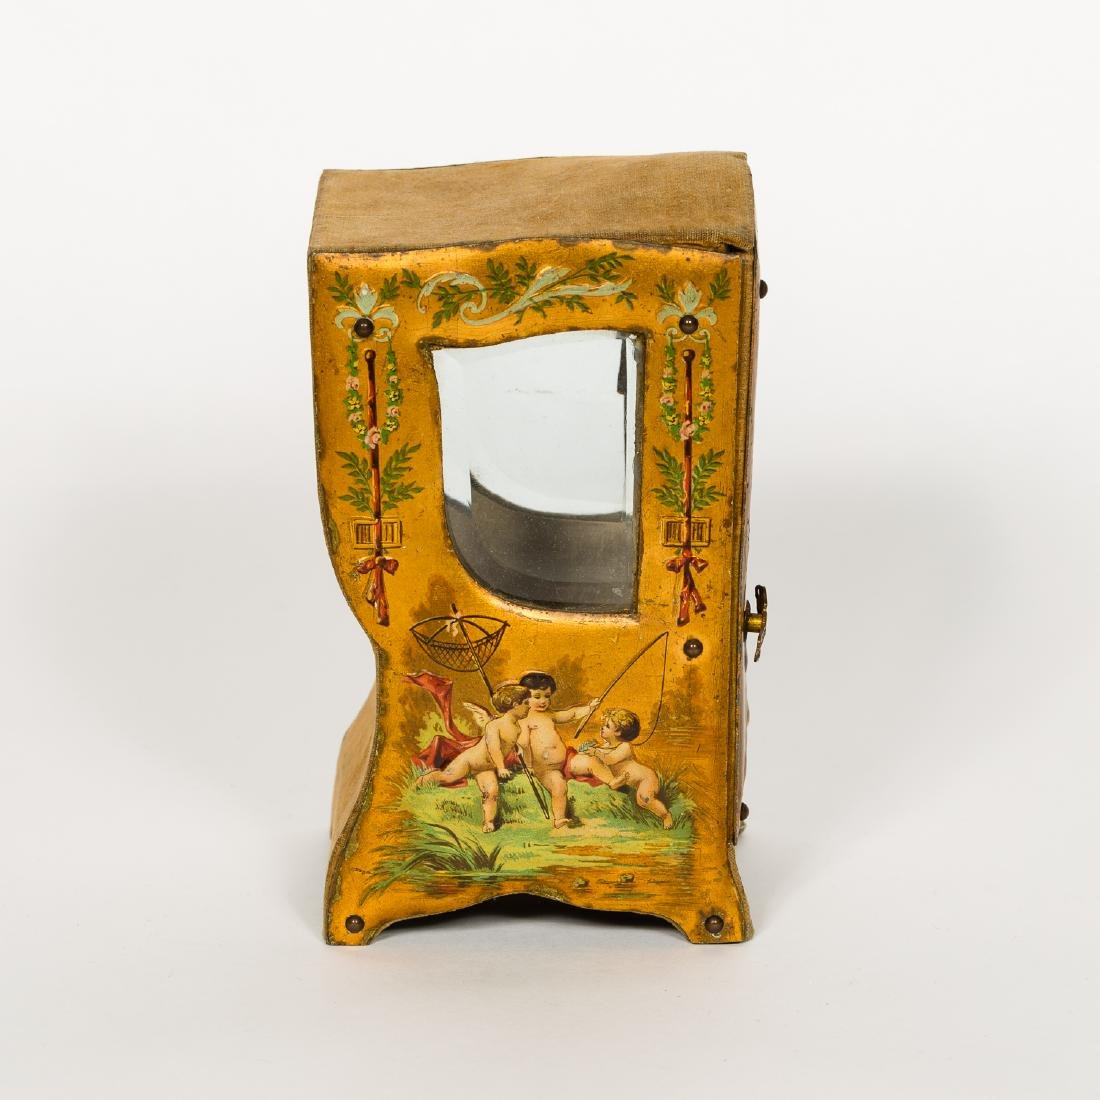 Miniature Vernis Martin Sedan Chair Form Box - 3